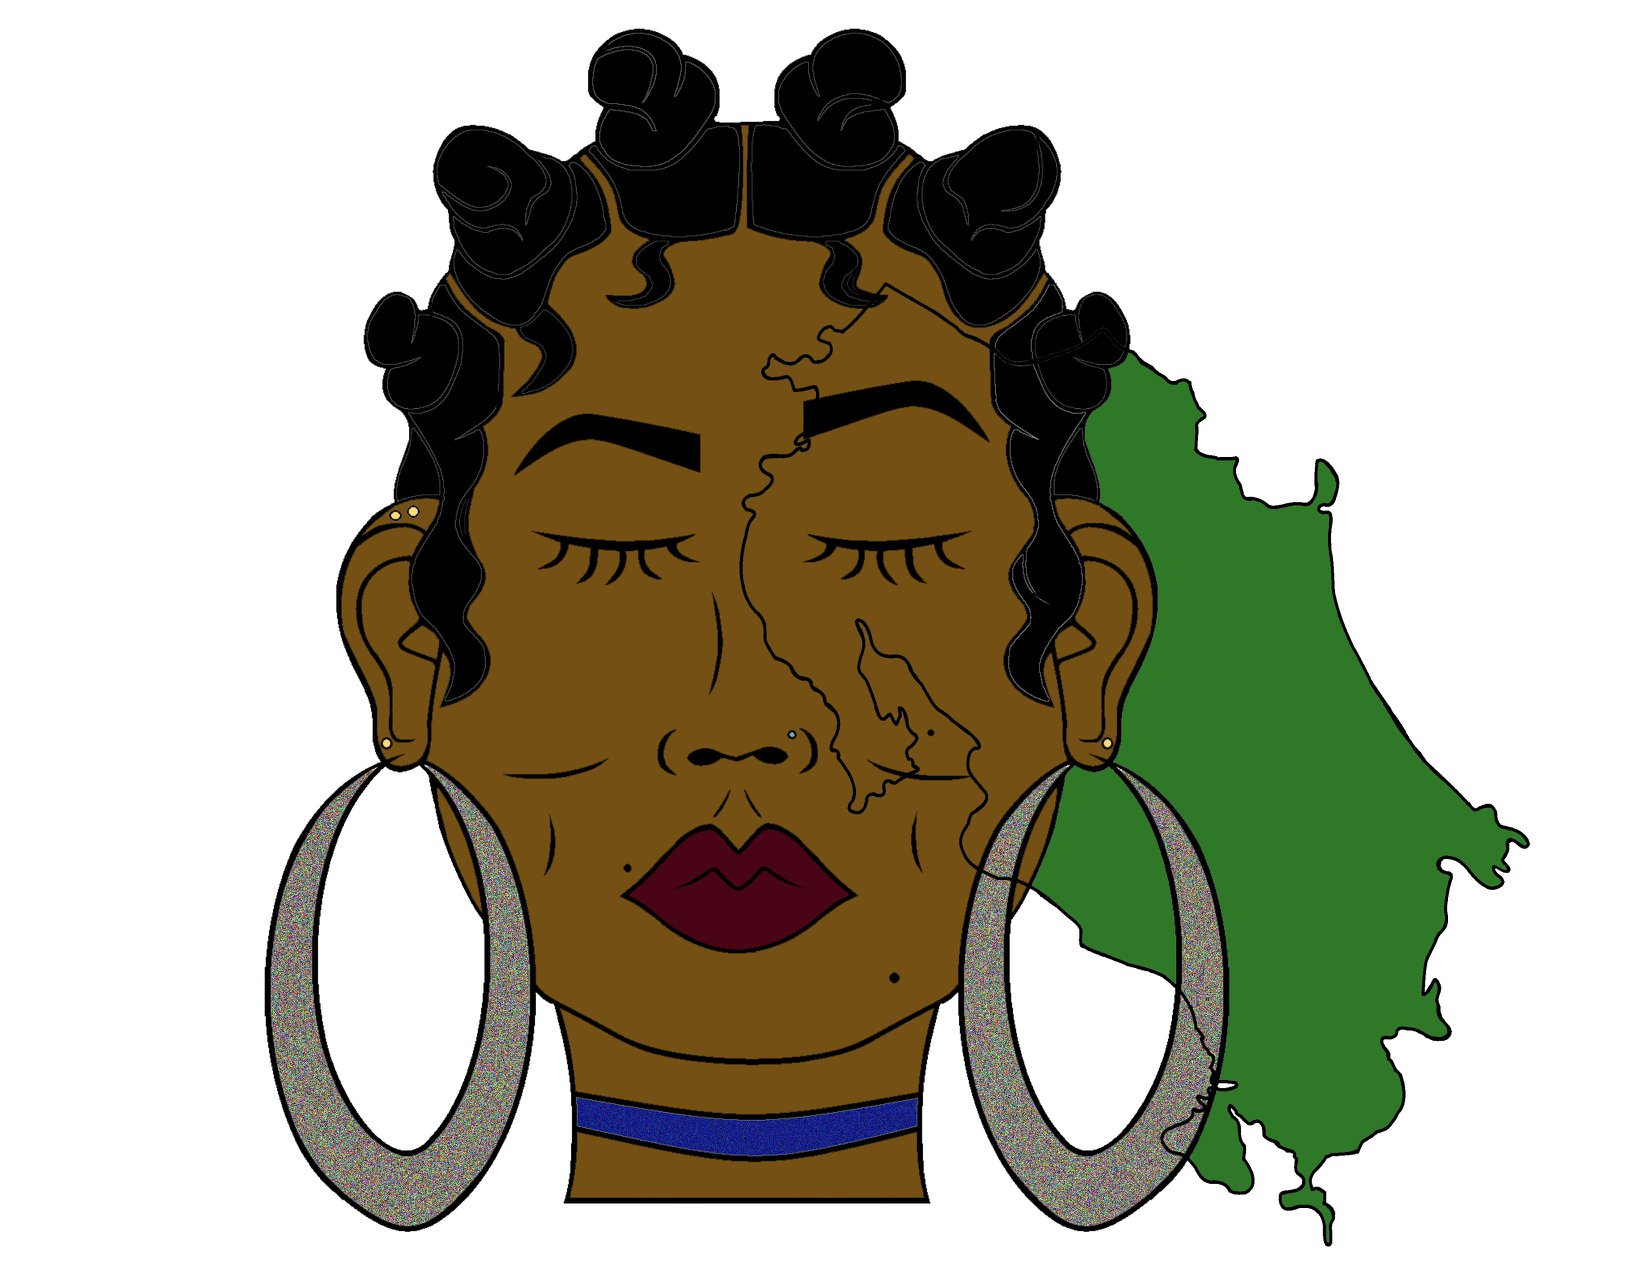 Miss Costa Rica. Her hair is styled in bantu knots representing her culture and big hoop earrings with dark red lips to enhance her style and beauty. You'll notice Costa Rica sketched into her face, paying homage to her homeland and providing representation for the Afro Costa Rican people. -